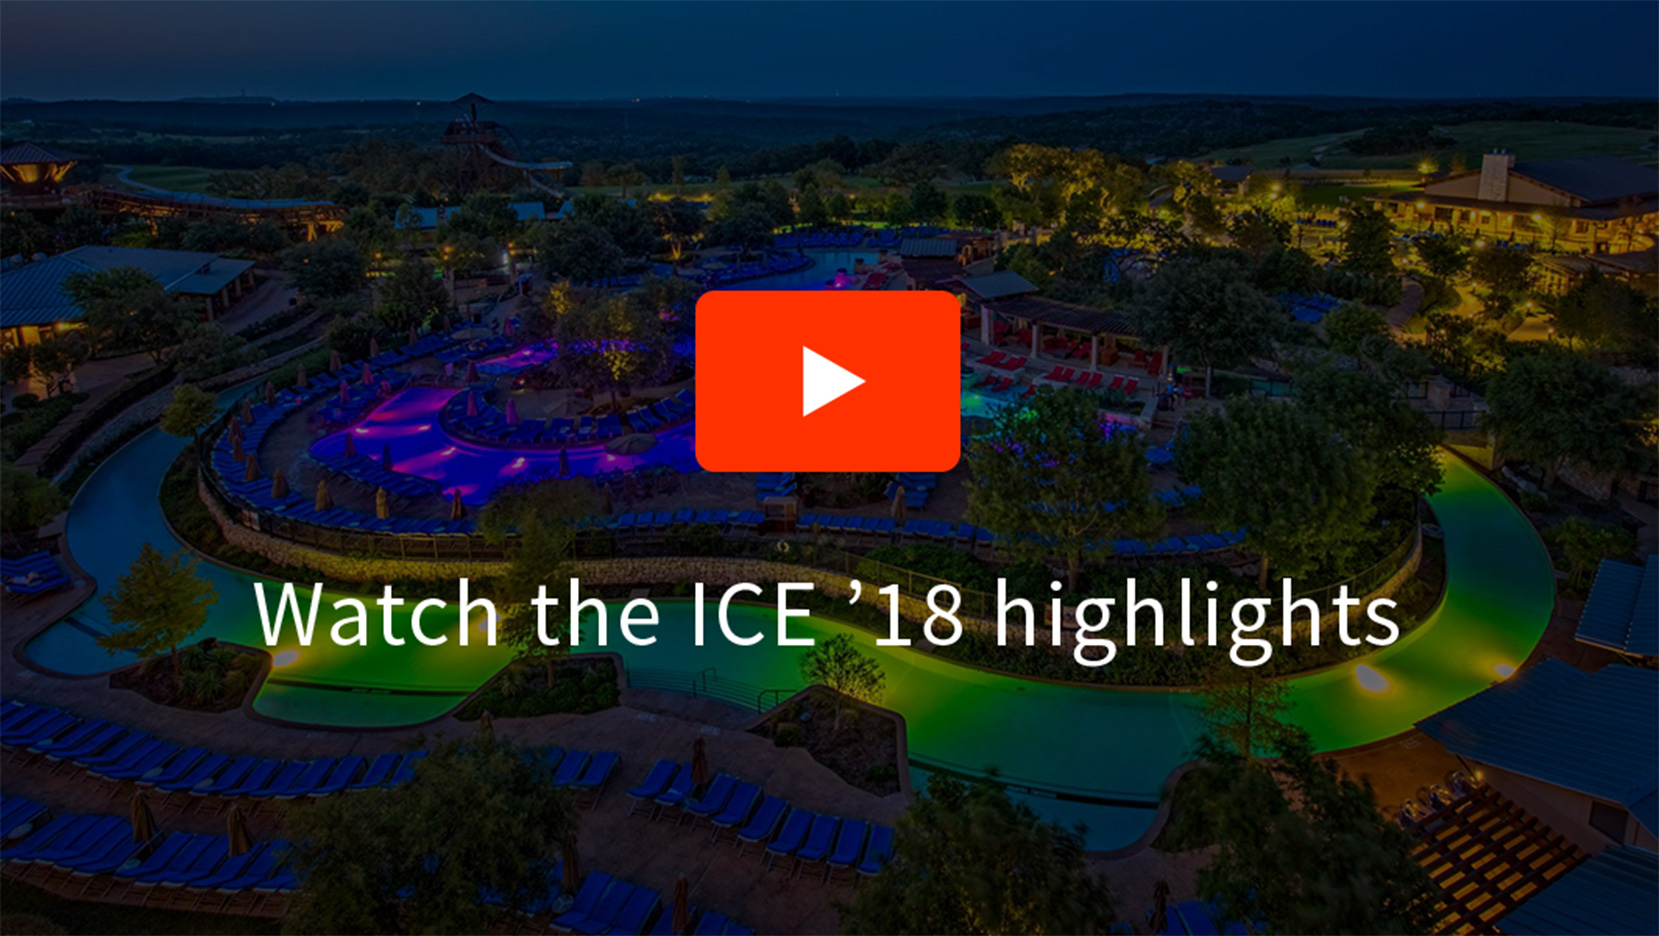 Watch the ICE '18 highlights